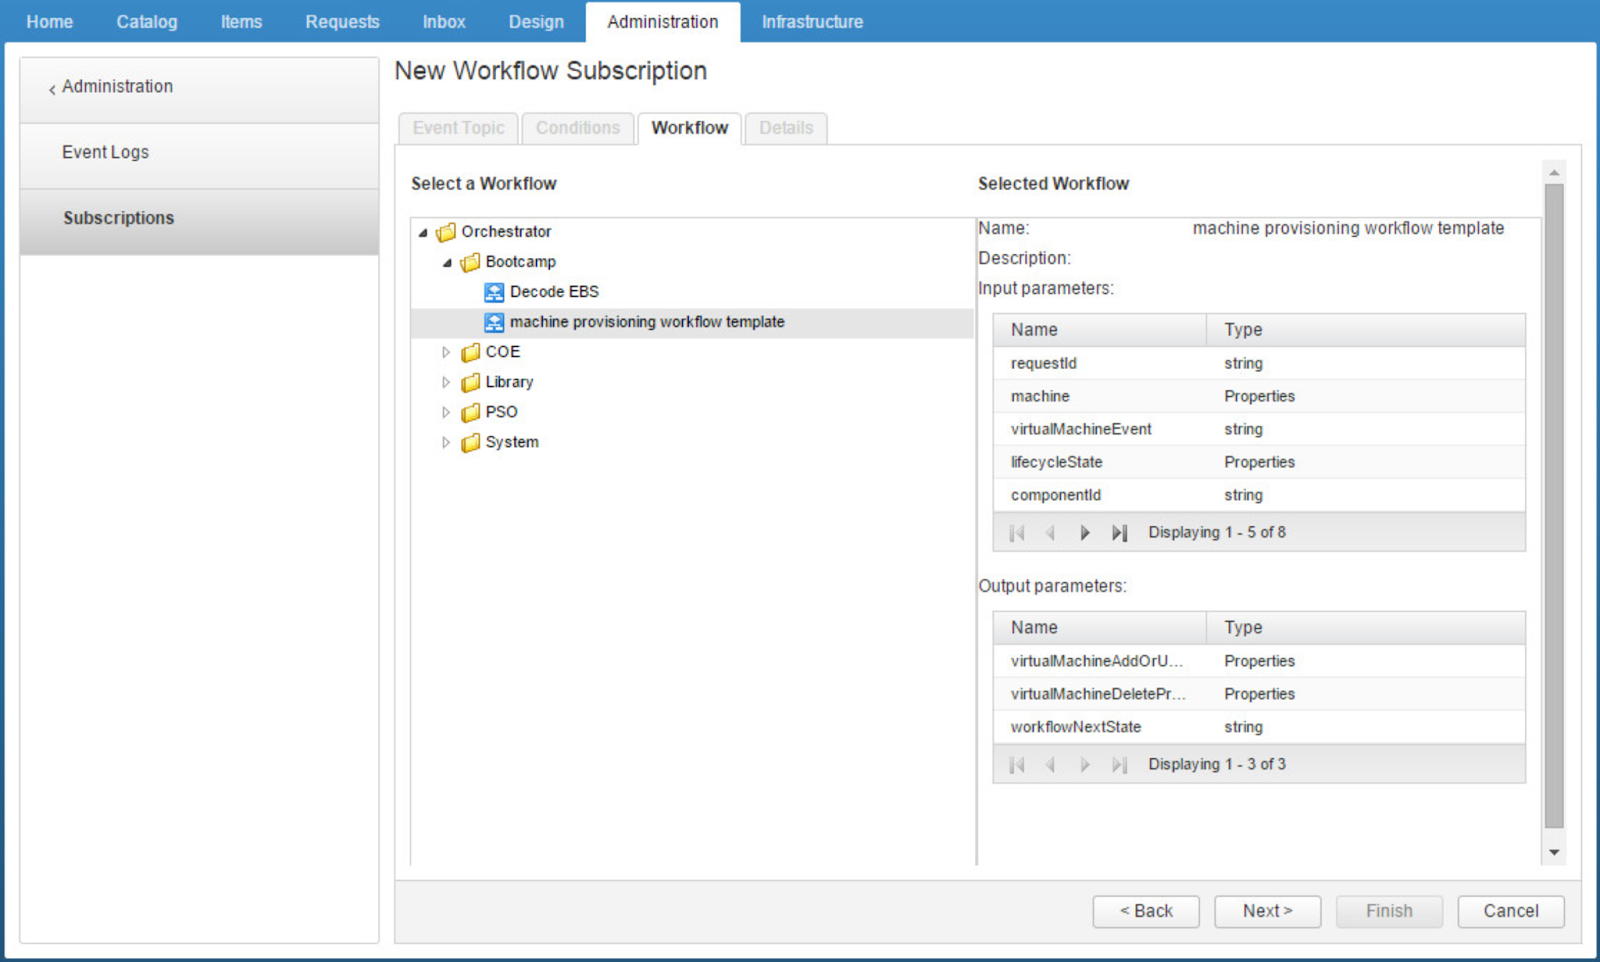 SDDCMASTERS: vRealie Automation 7 extensibility though